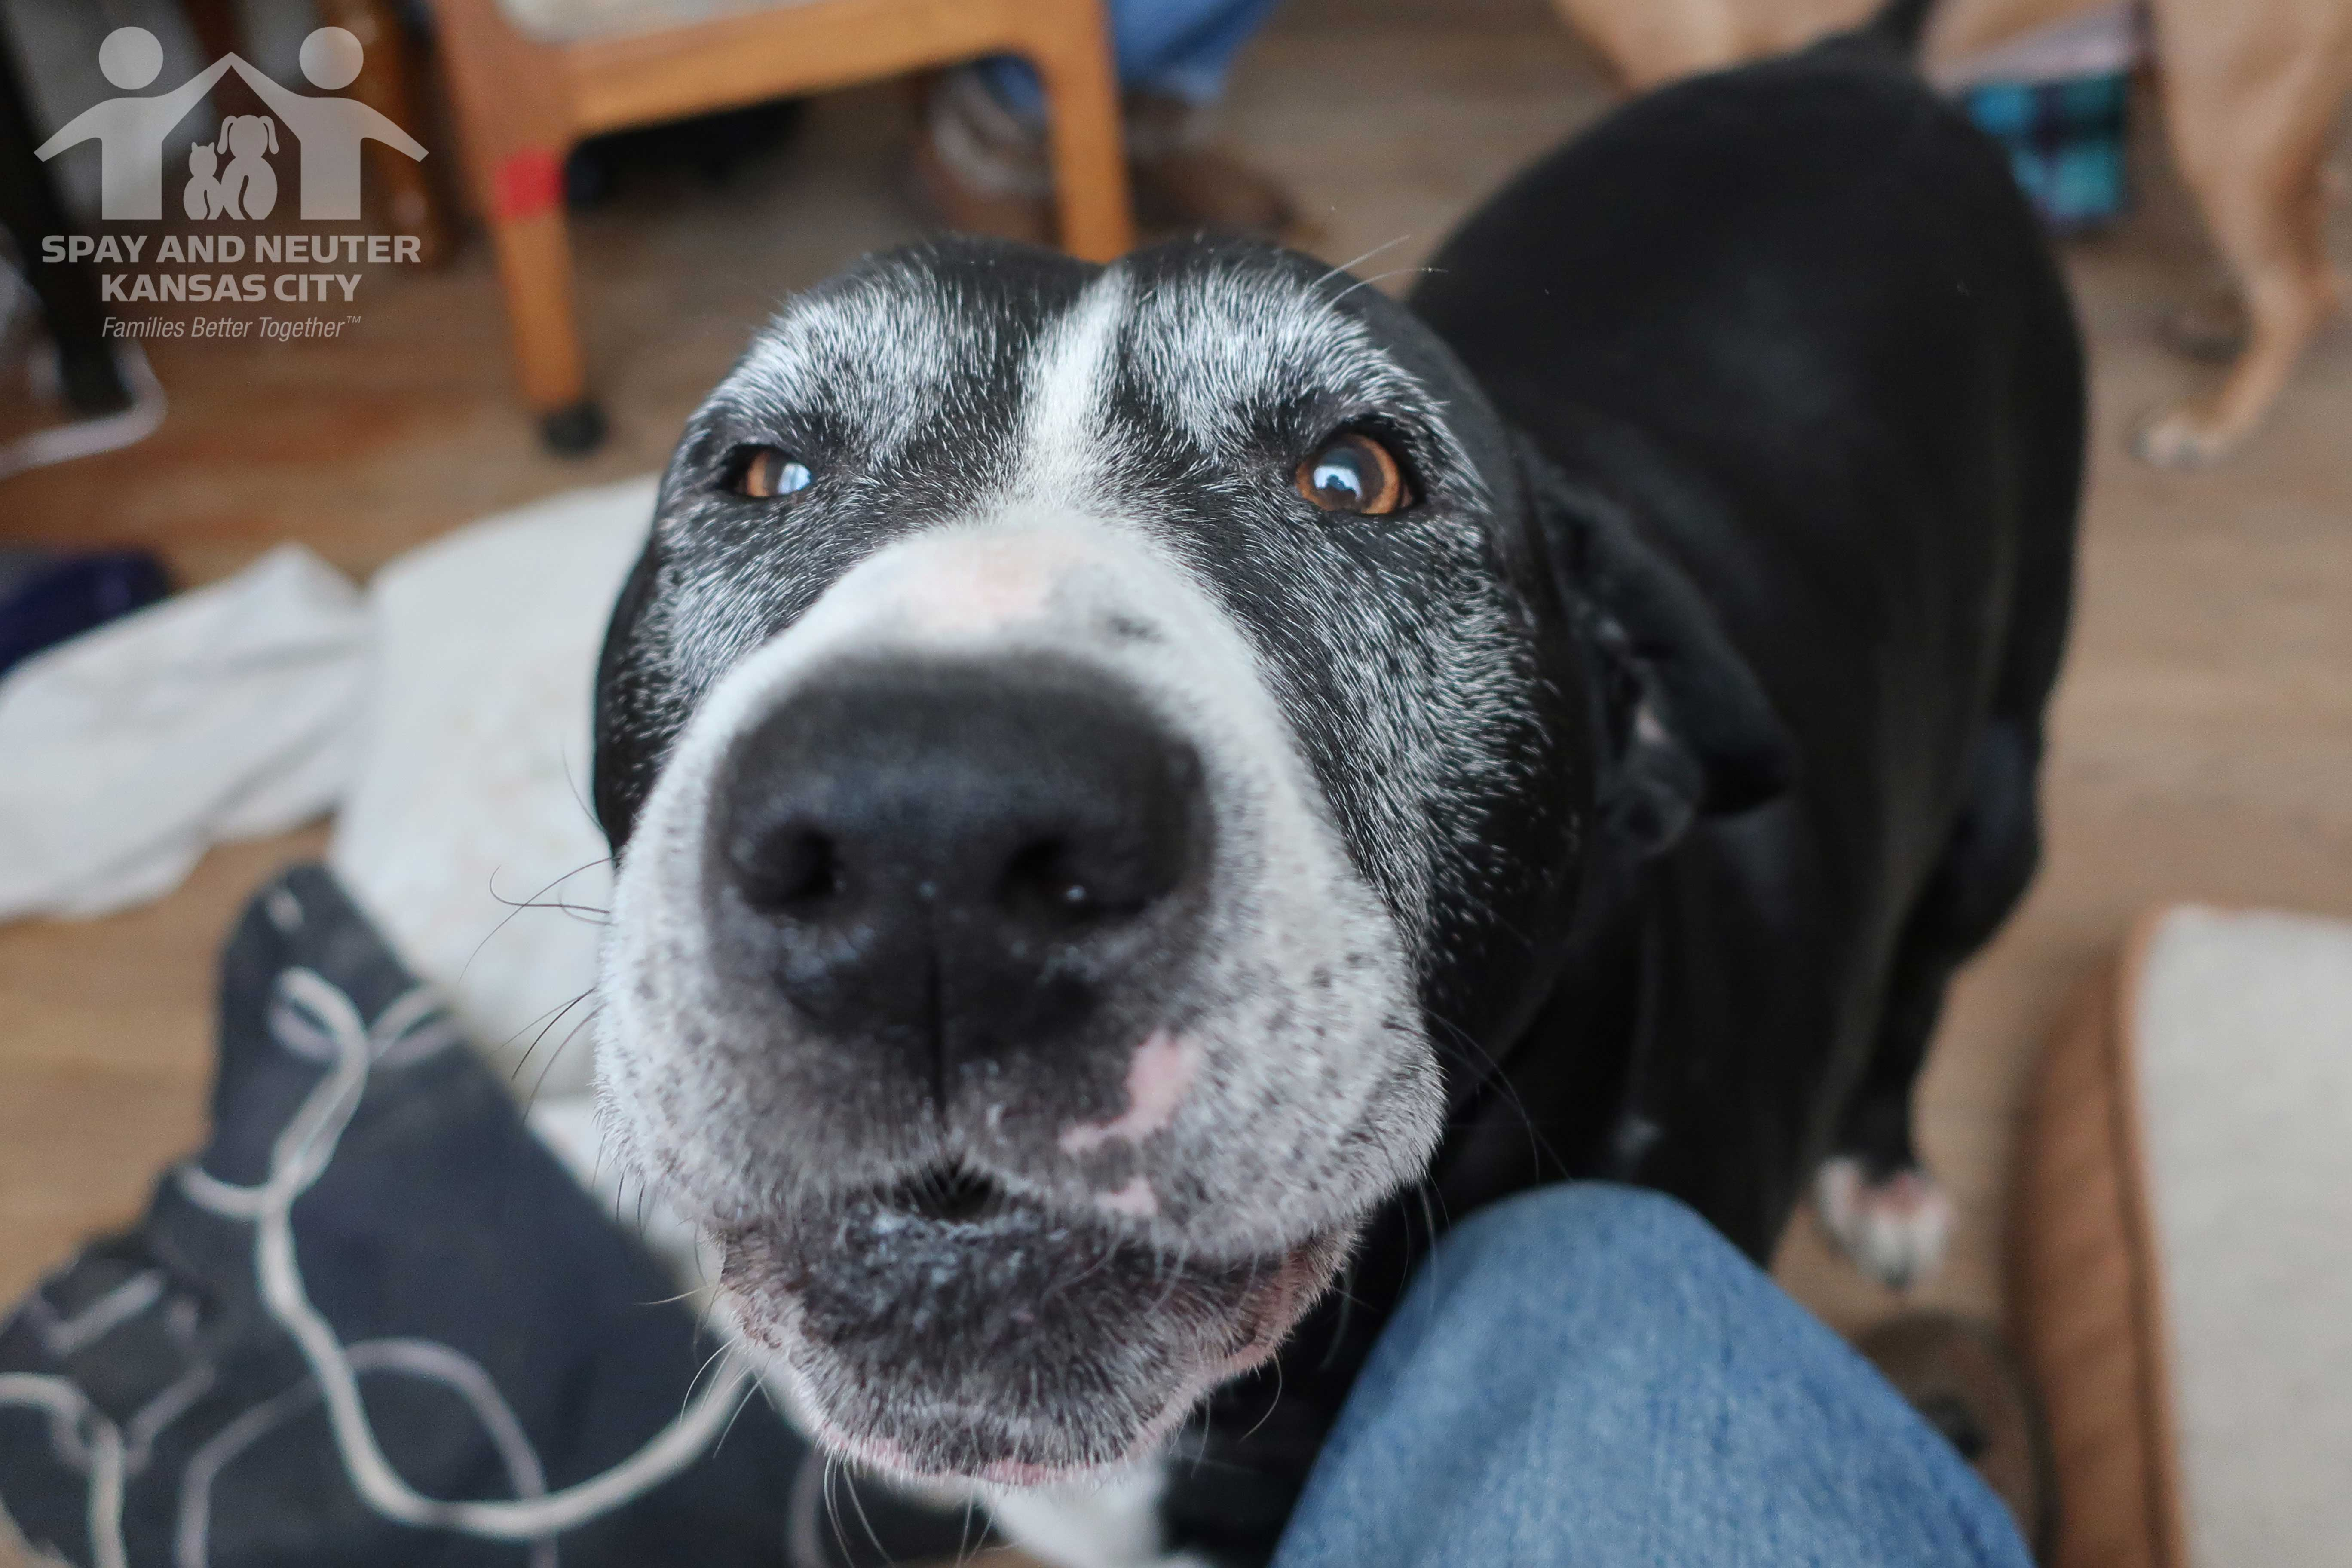 A black and white dog named Booter gets close to the camera